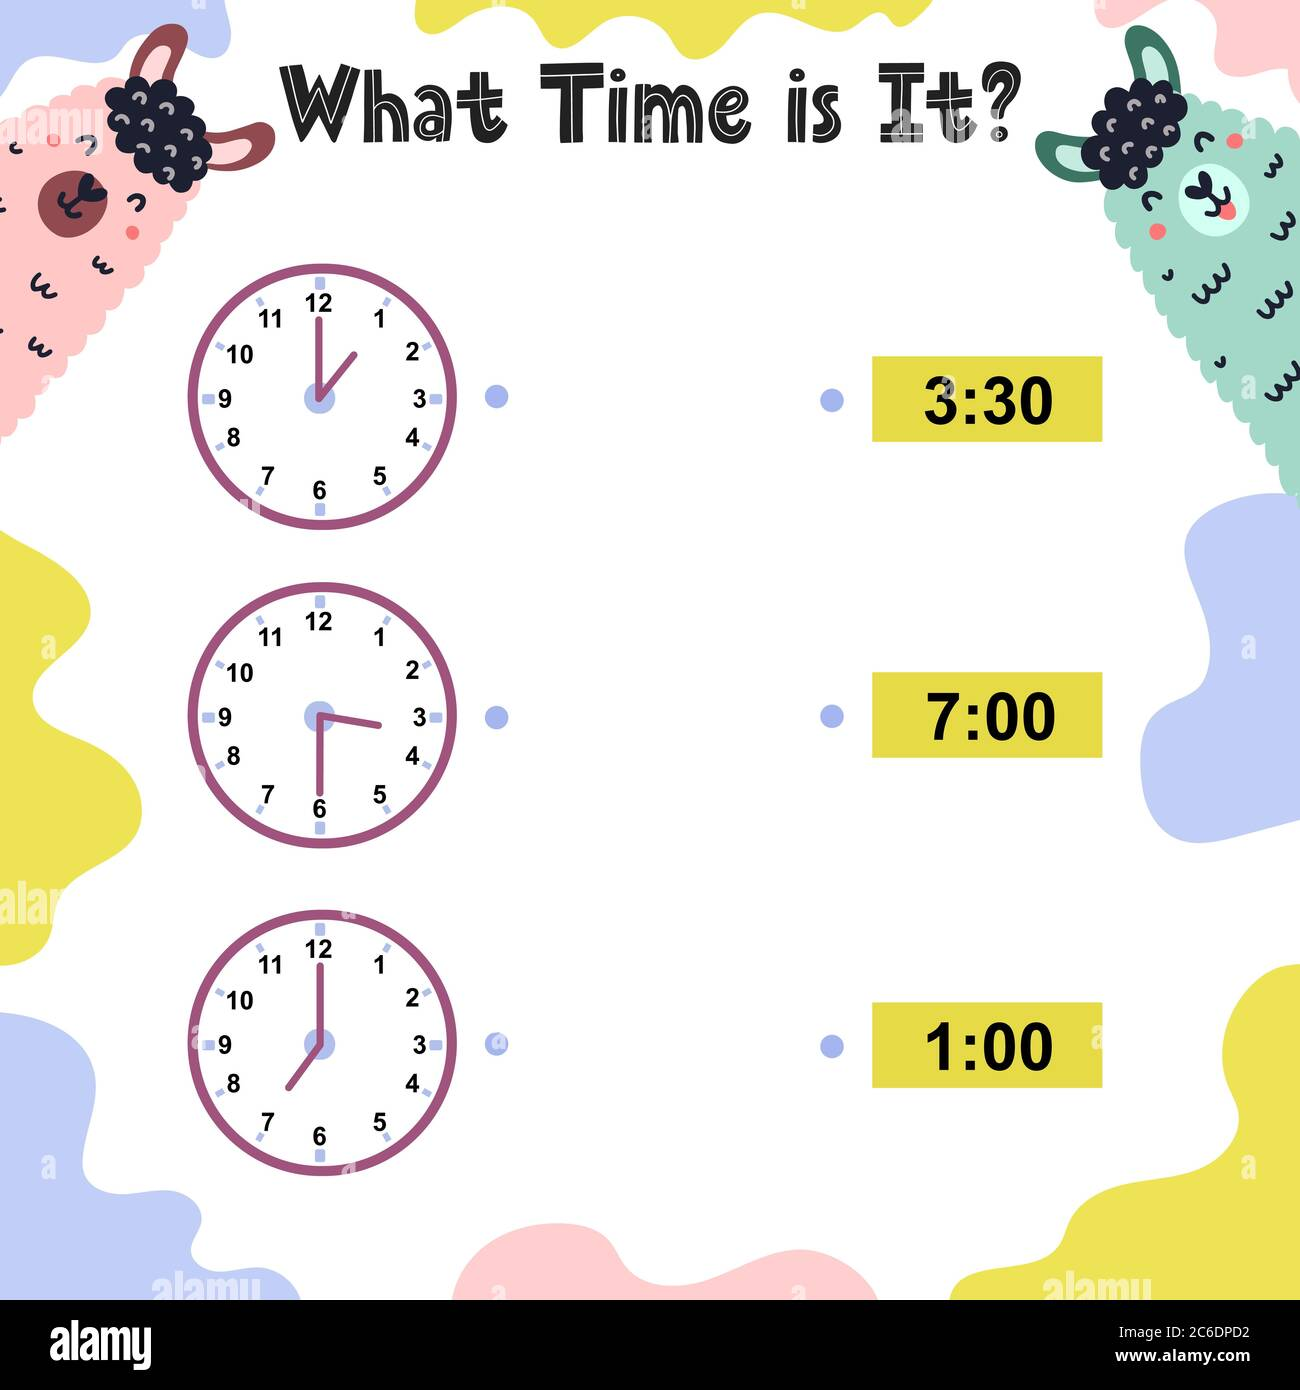 What Time Is It Worksheet For Kids Telling Time Practice